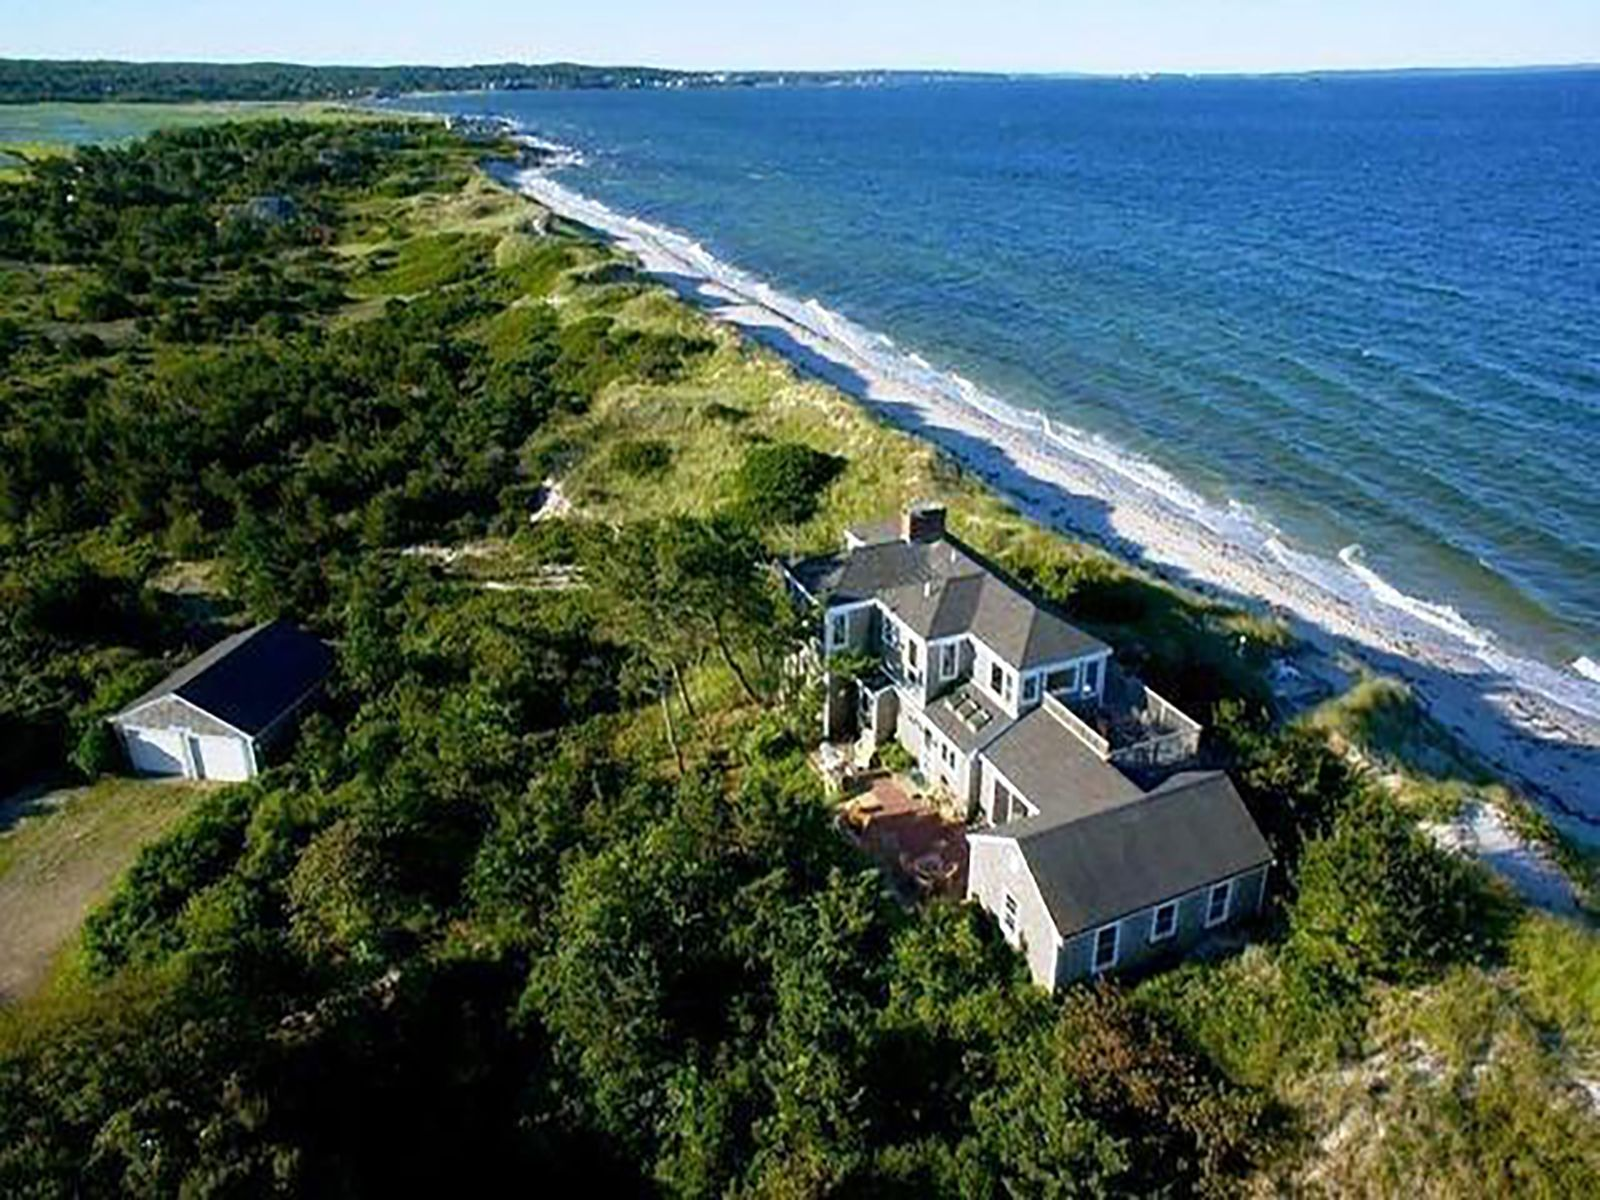 Private Oceanfront Residence, West Falmouth MA Single Family Home - Cape Cod Real Estate